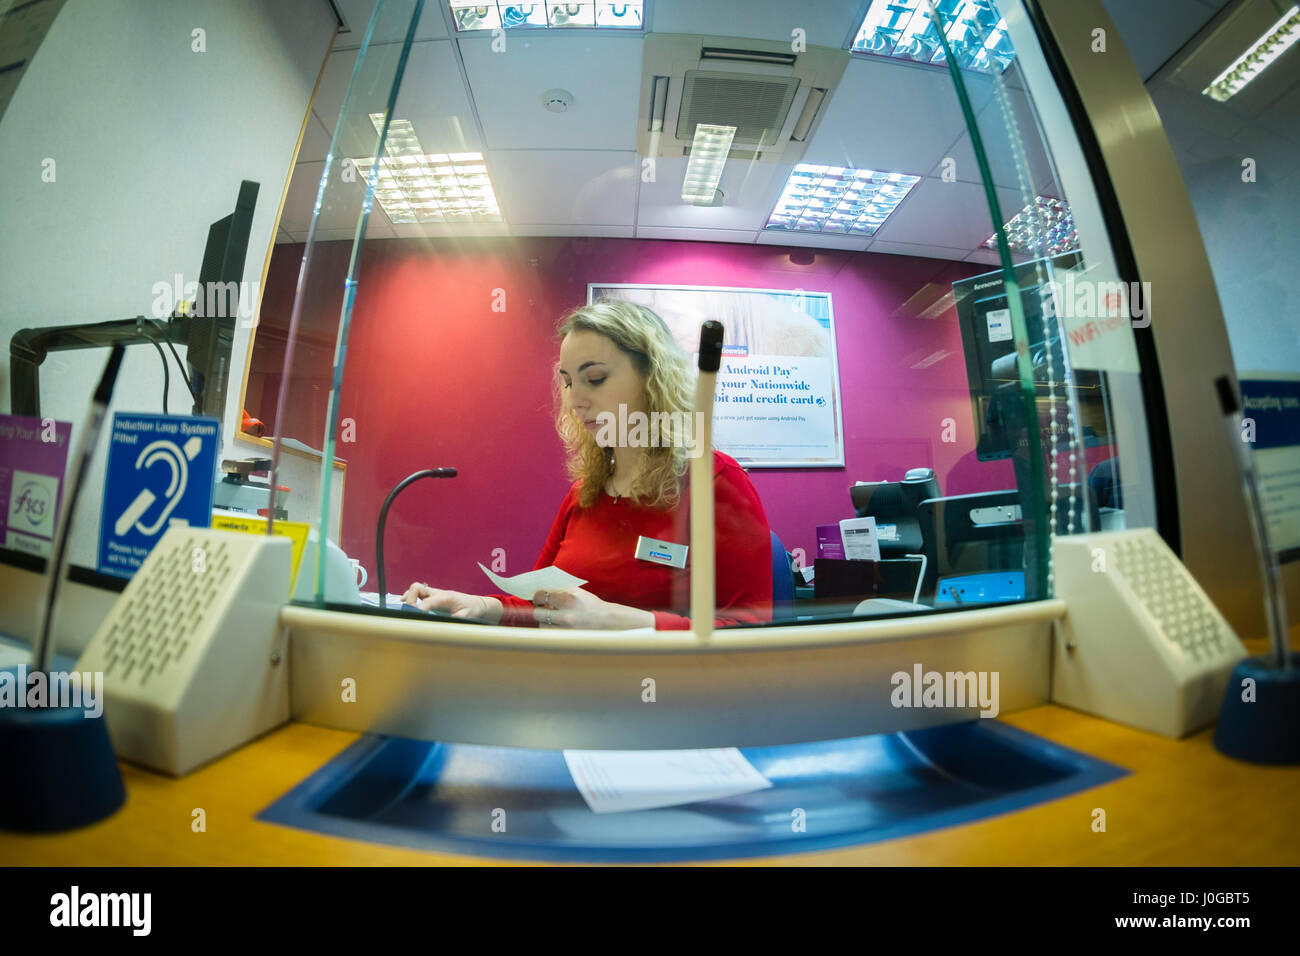 Financial Services A Young Woman Bank Teller Working Behind The